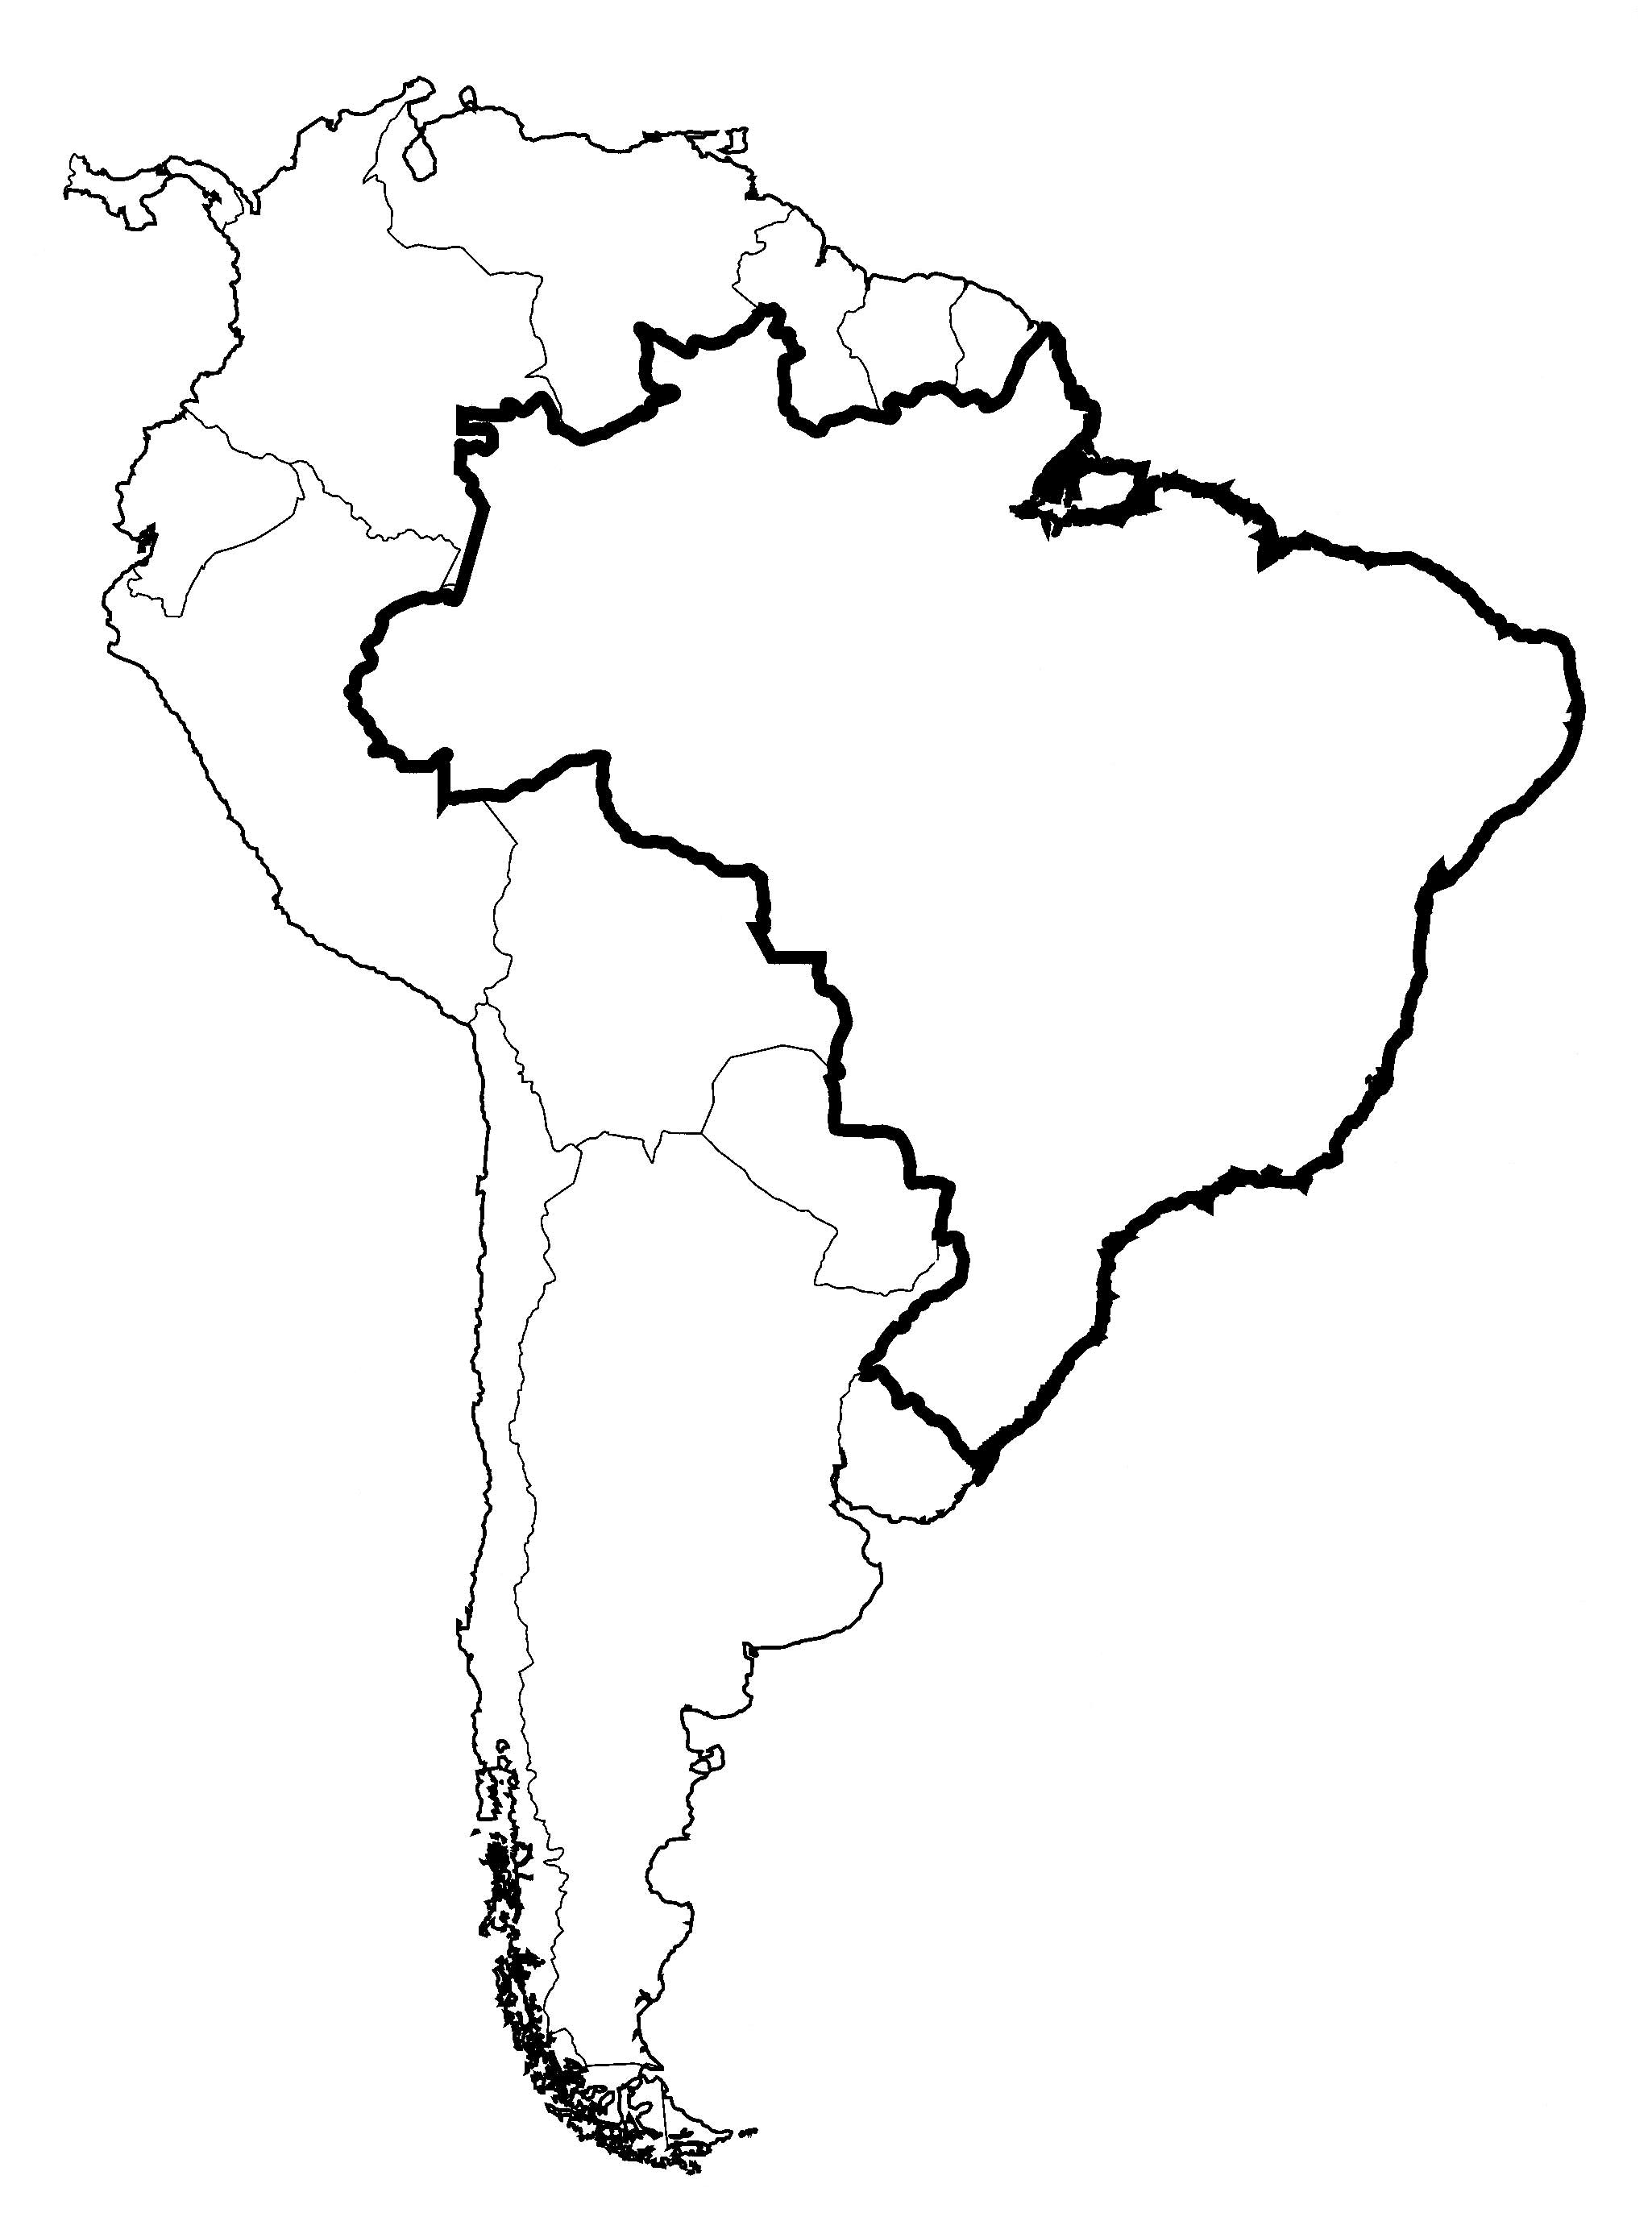 South America Interactive Map on description of south america, interactive africa map, statistics of south america, continent of south america, historical maps of south america, all countries and capitals in south america, interactive travel map, map of central america, interactive trail map, features of south america, industry of south america, population density of south america, detailed map south america, lost cities of south america, interactive asia map, food of south america, map of southern north america, spanish language in south america, climate of south america, world map belize central america,